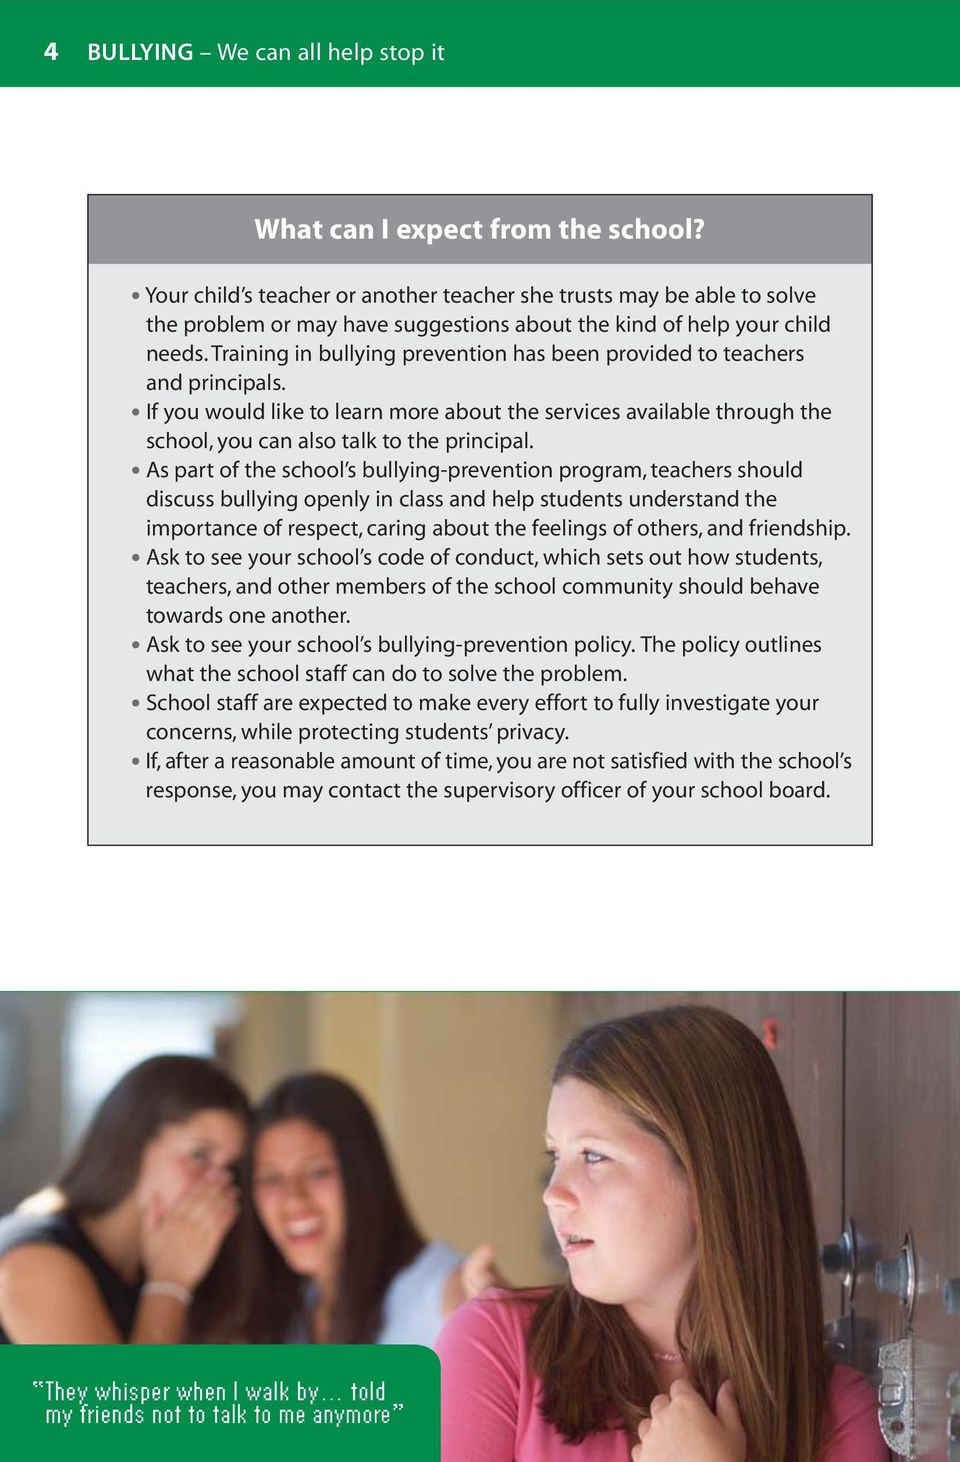 Training in bullying prevention has been provided to teachers and principals. If you would like to learn more about the services available through the school, you can also talk to the principal.